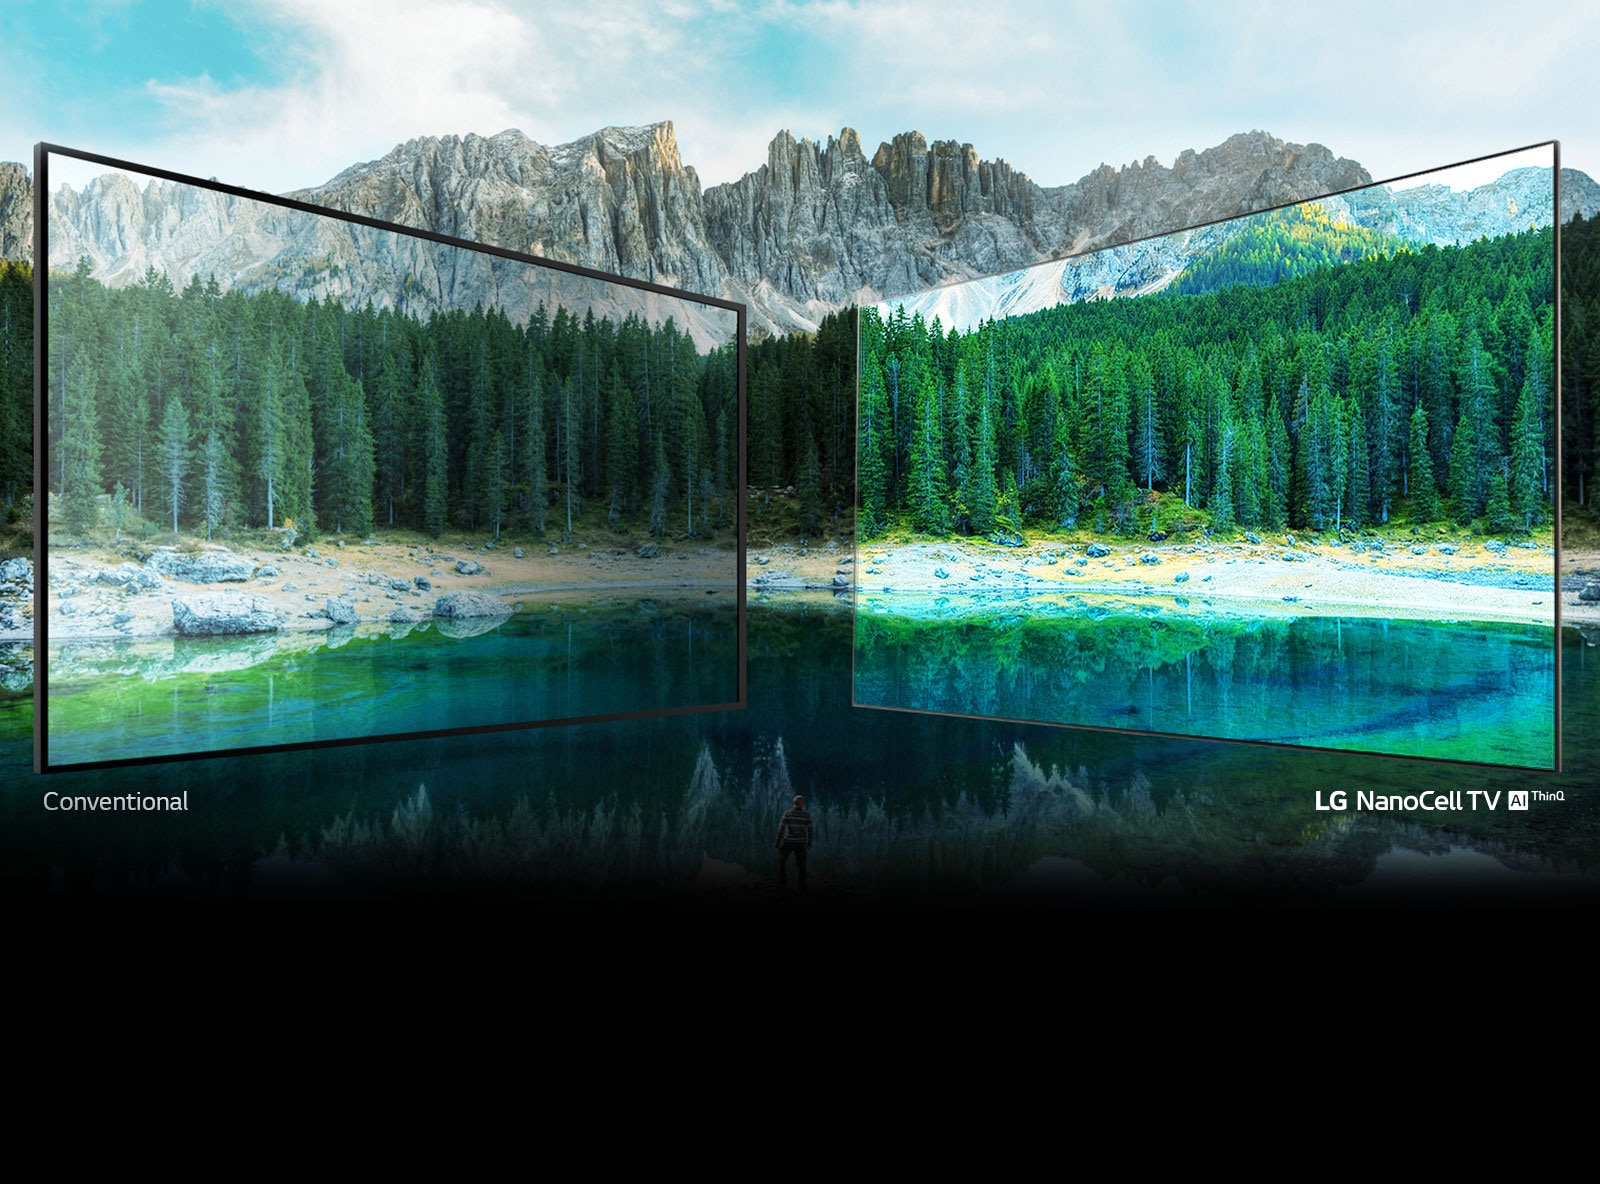 LG NanoCell TV 4K puts color on full display1